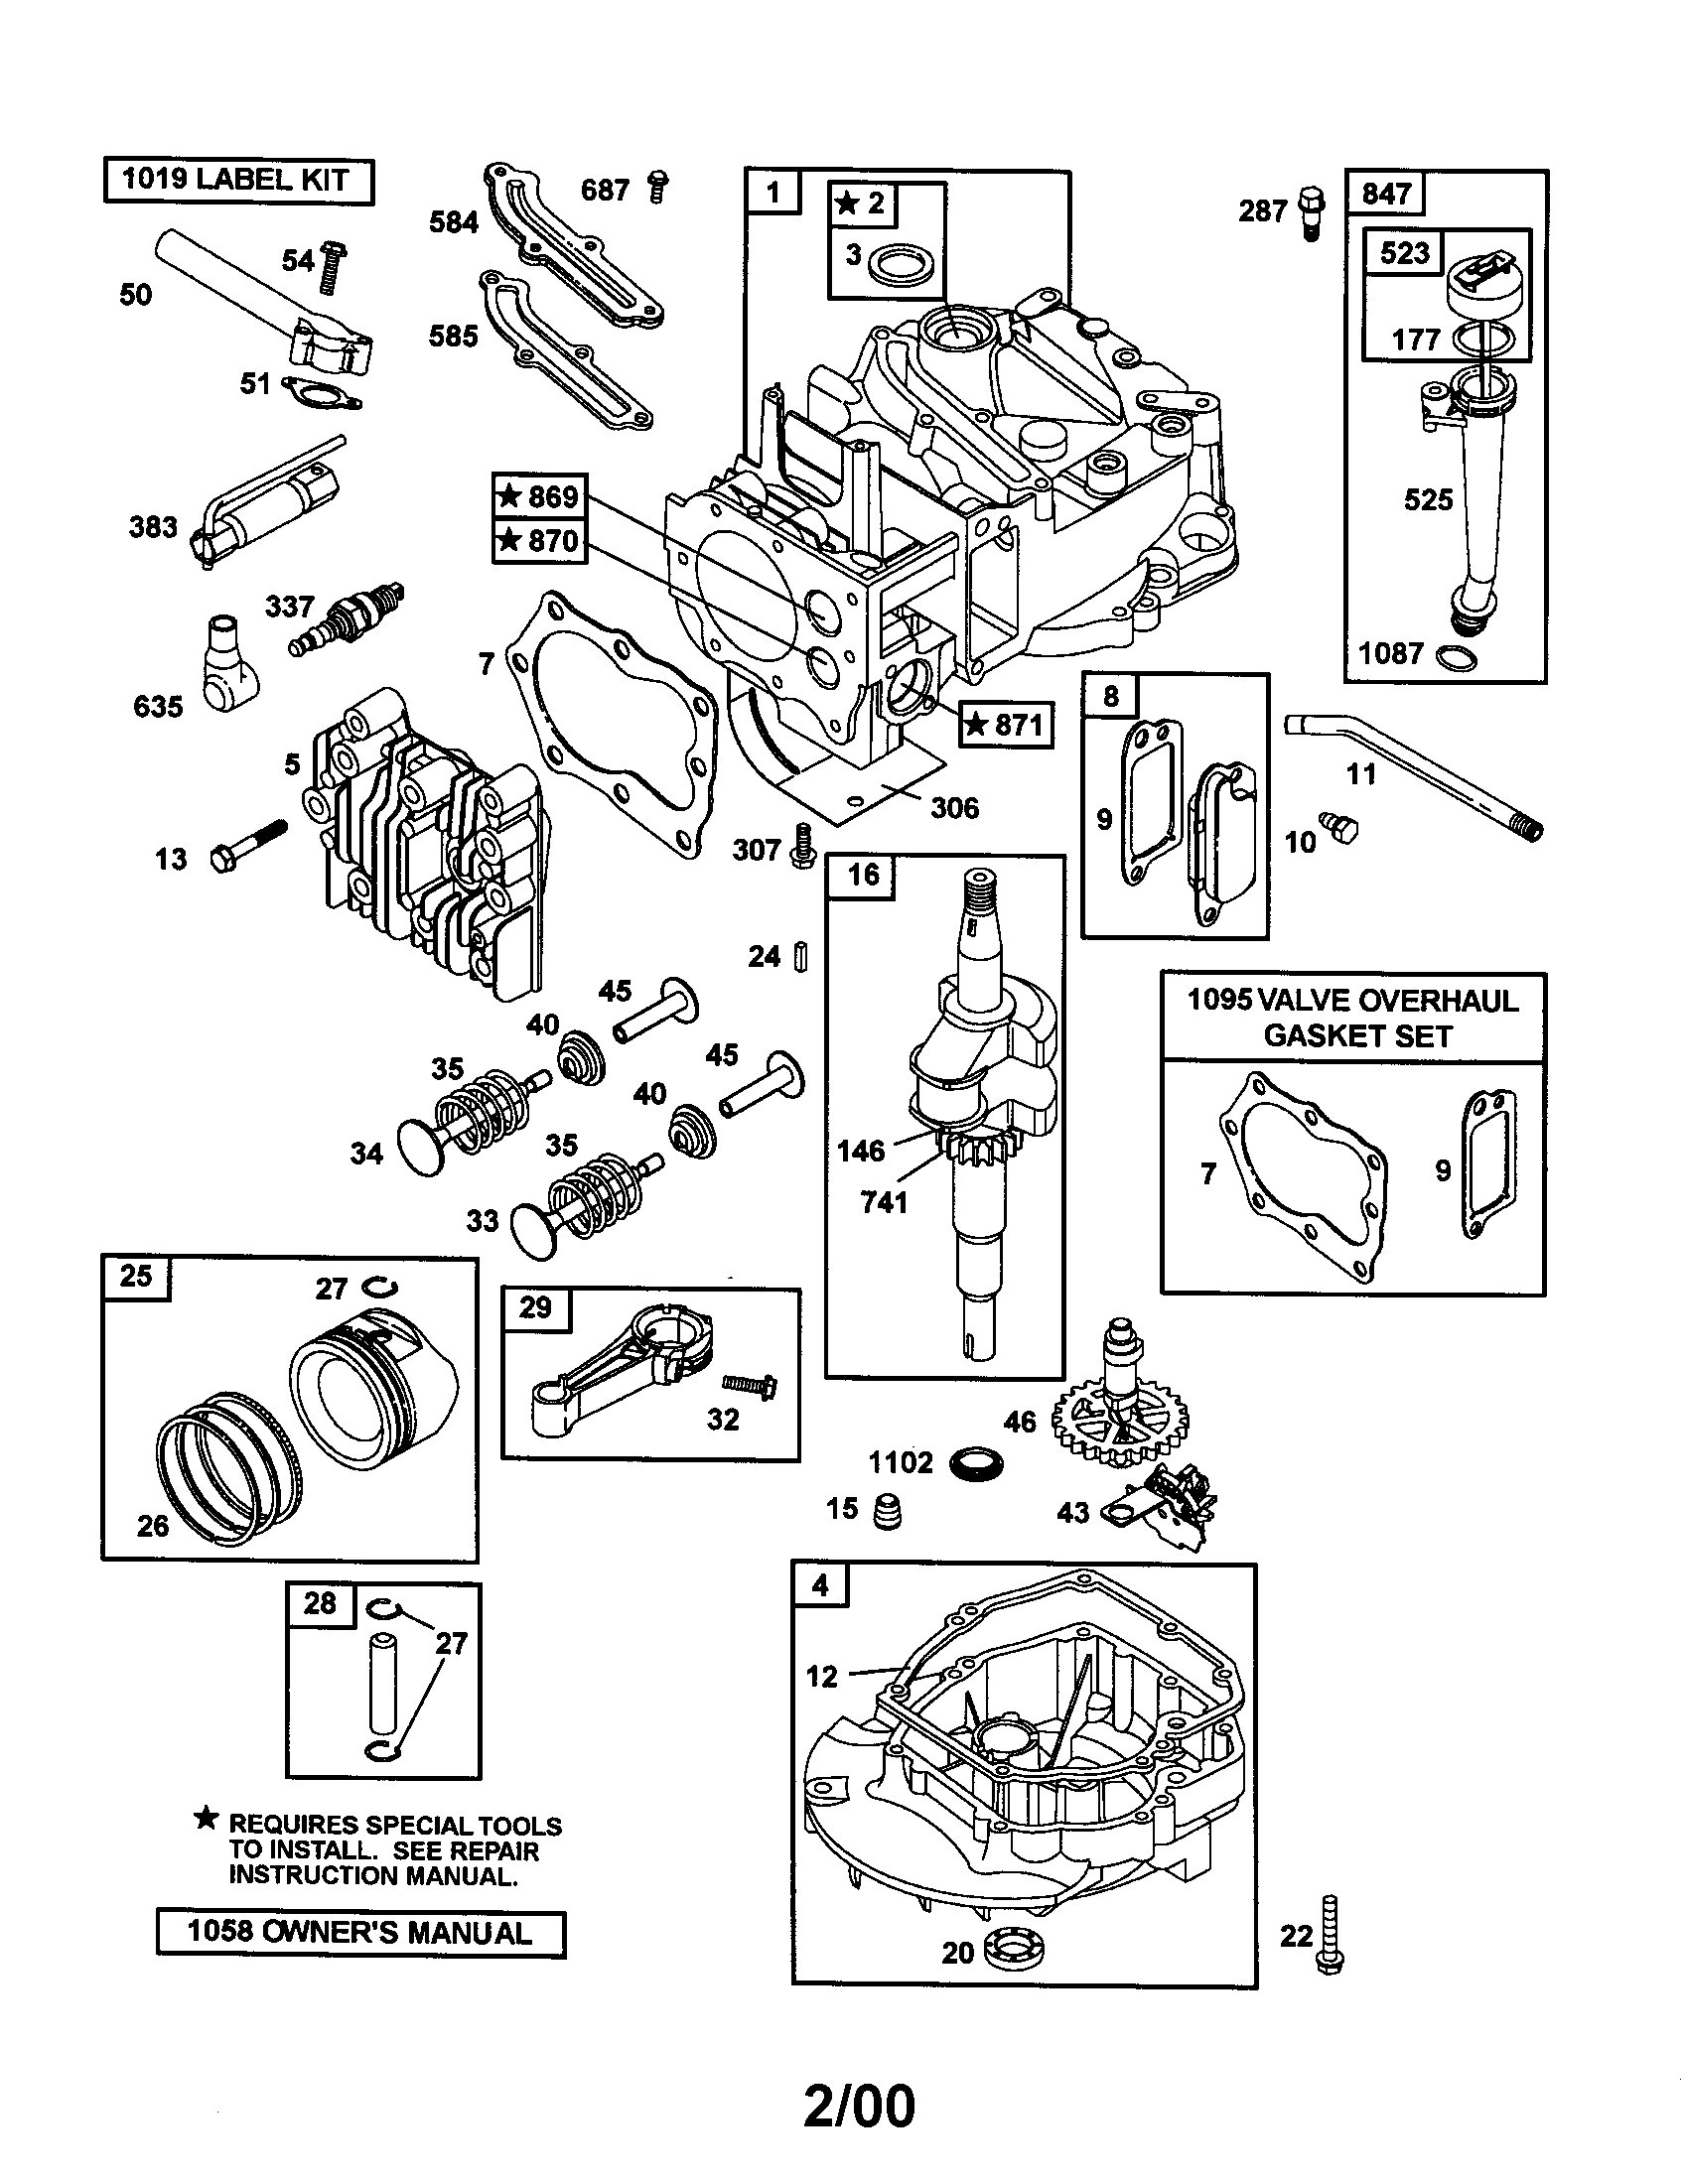 1980 Cushman Titan 36 Volt Battery Wiring Diagram